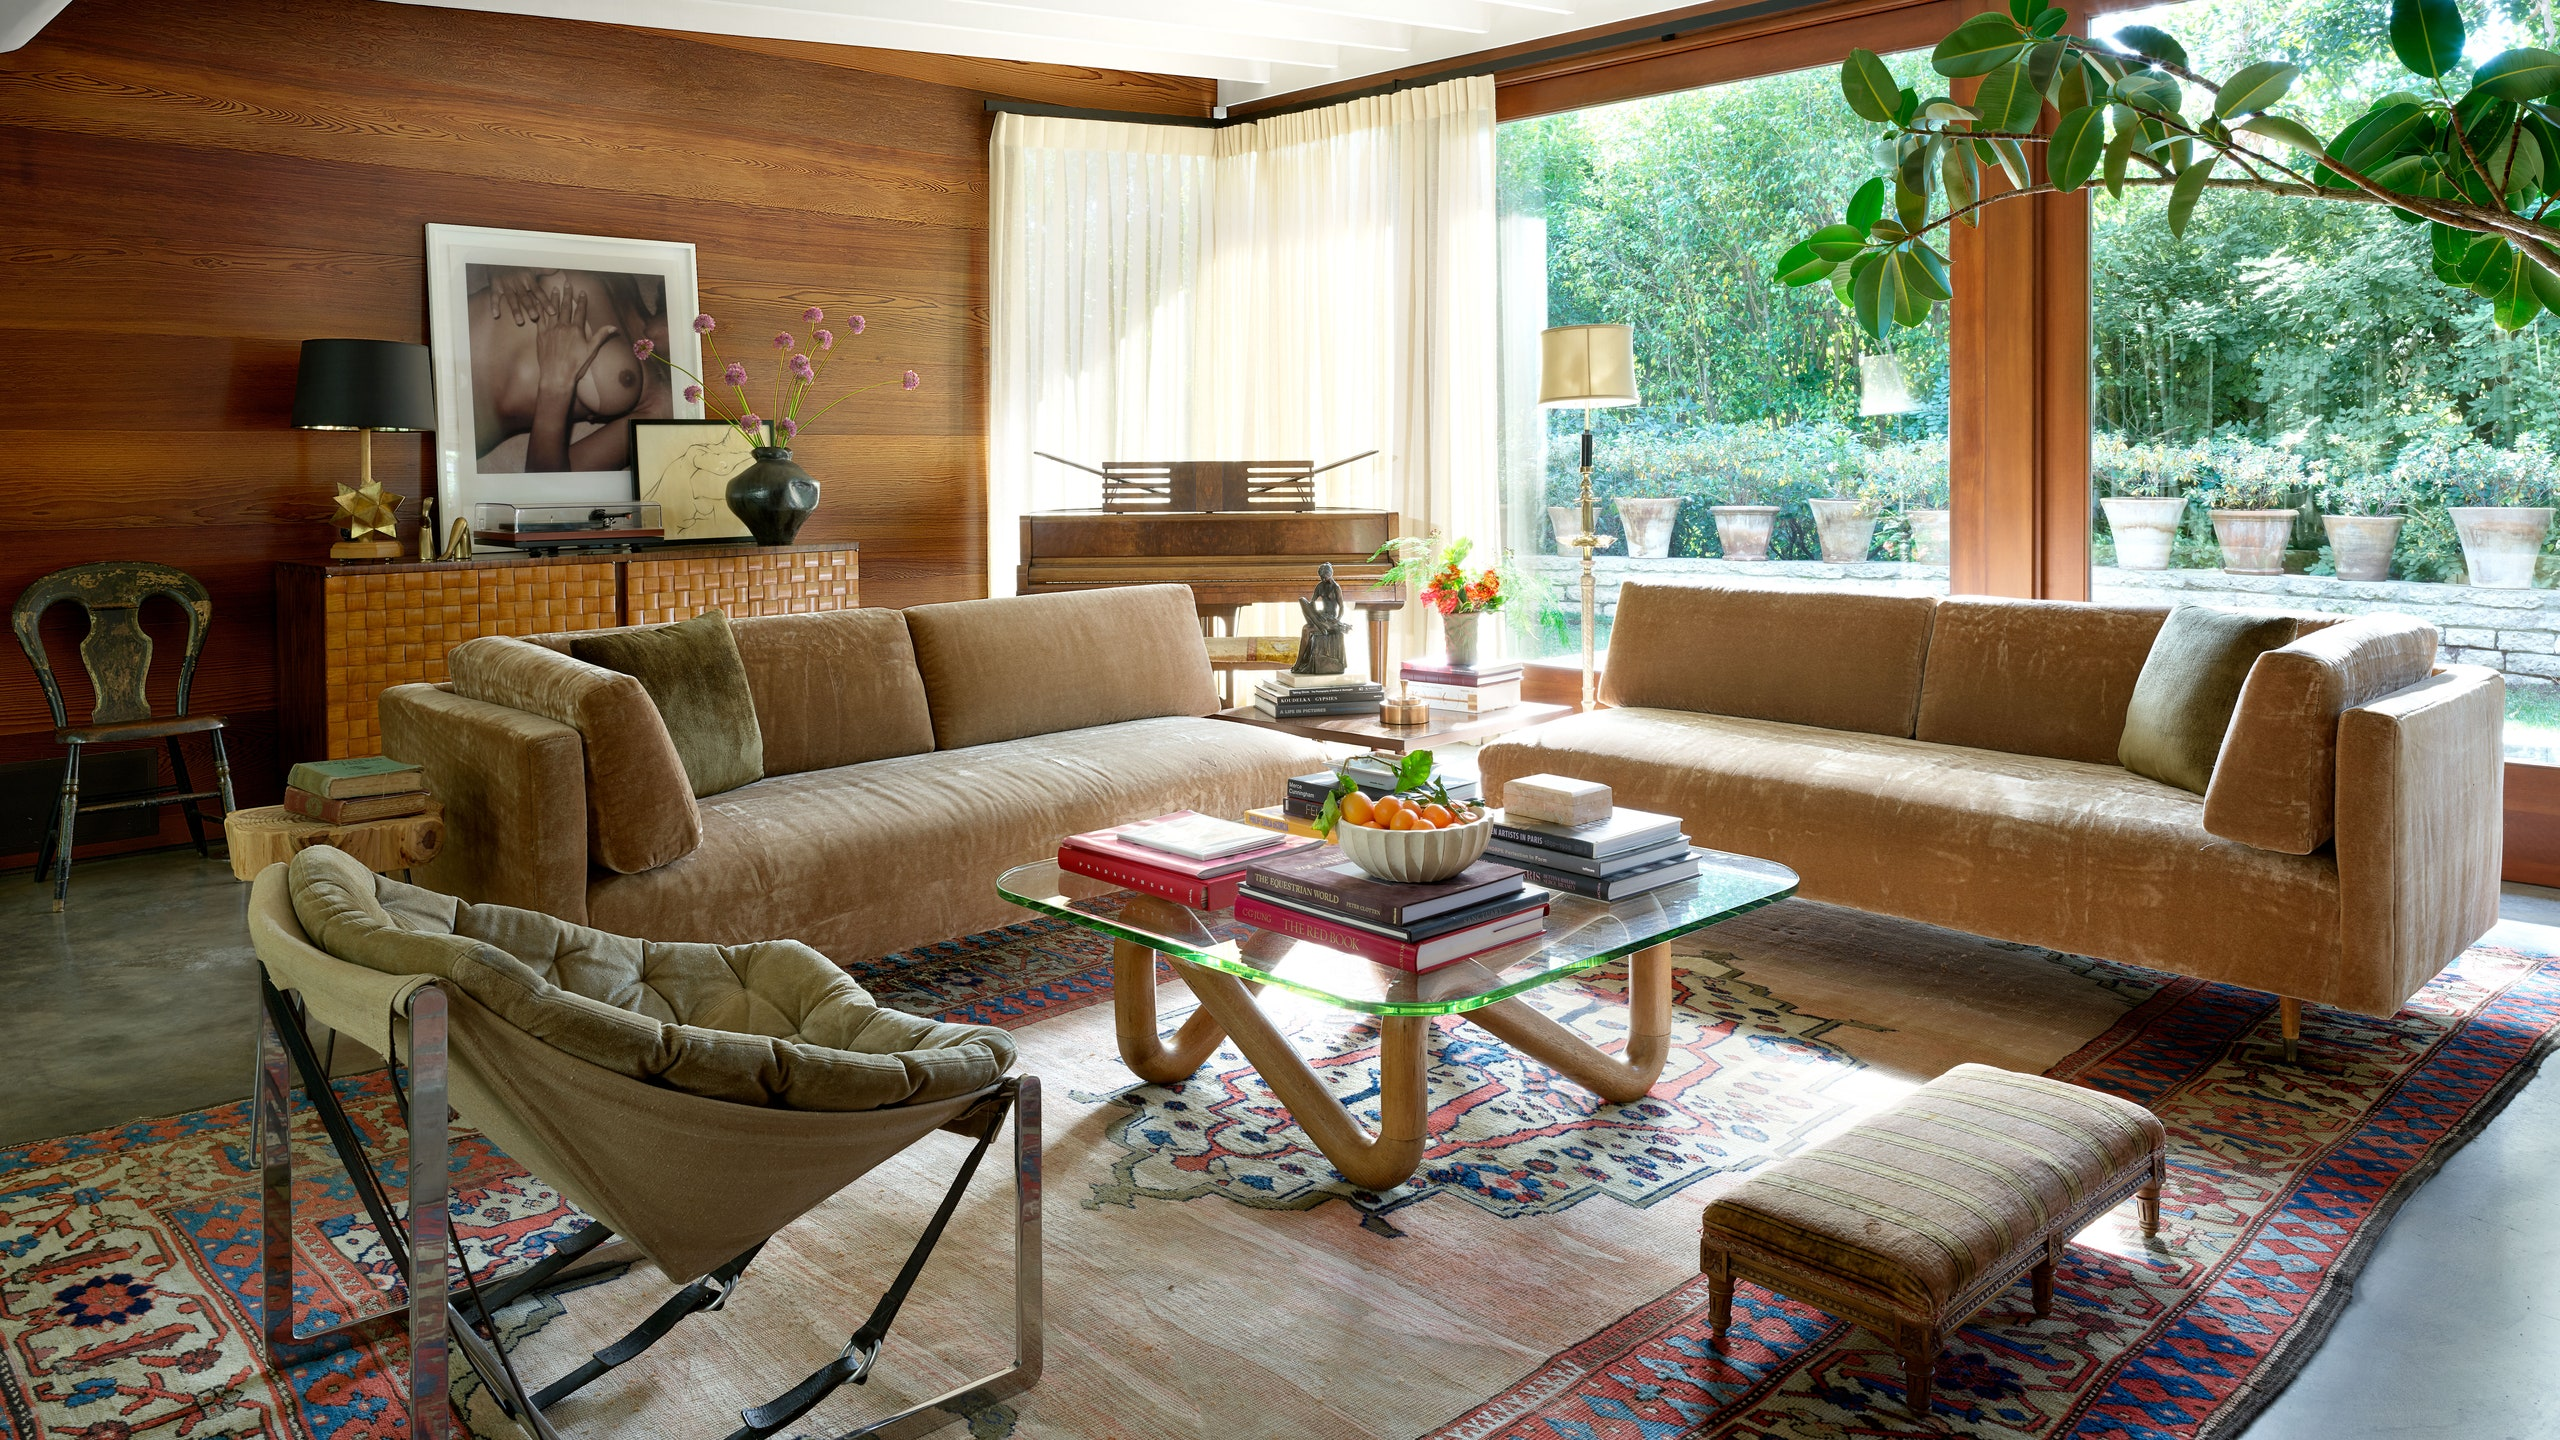 Small Garden Designs And Layouts, Celebrity Homes Tour Dakota Johnson S Mid Century House